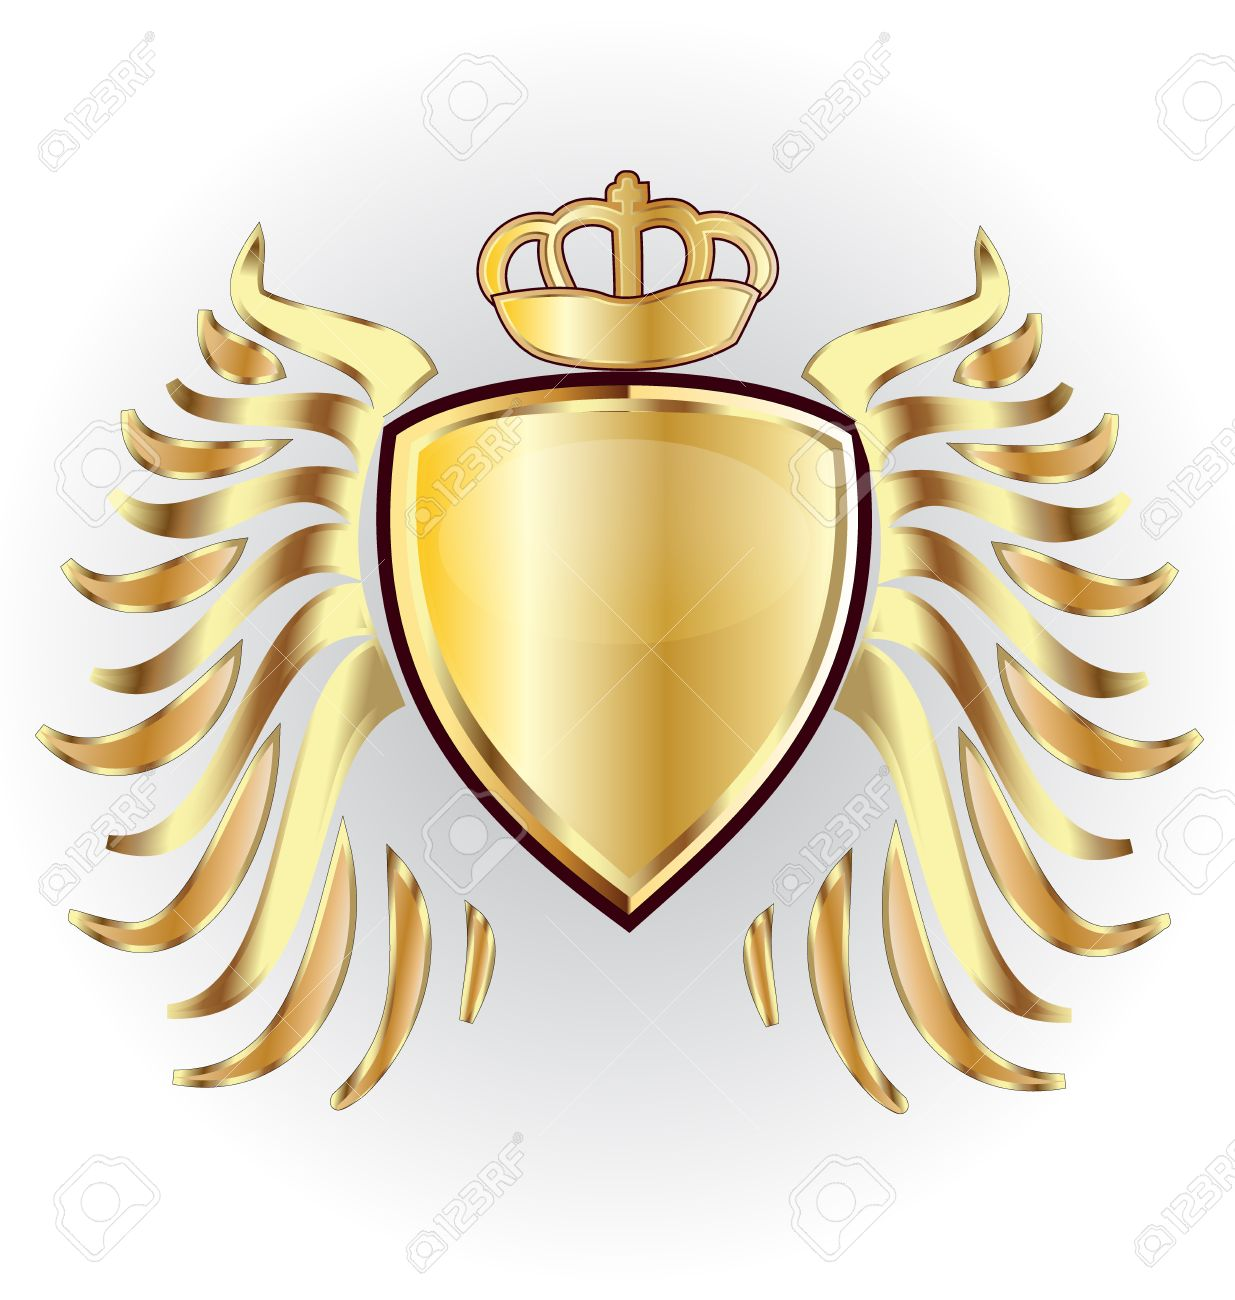 Gold shield crown and wings vector image - 57119407